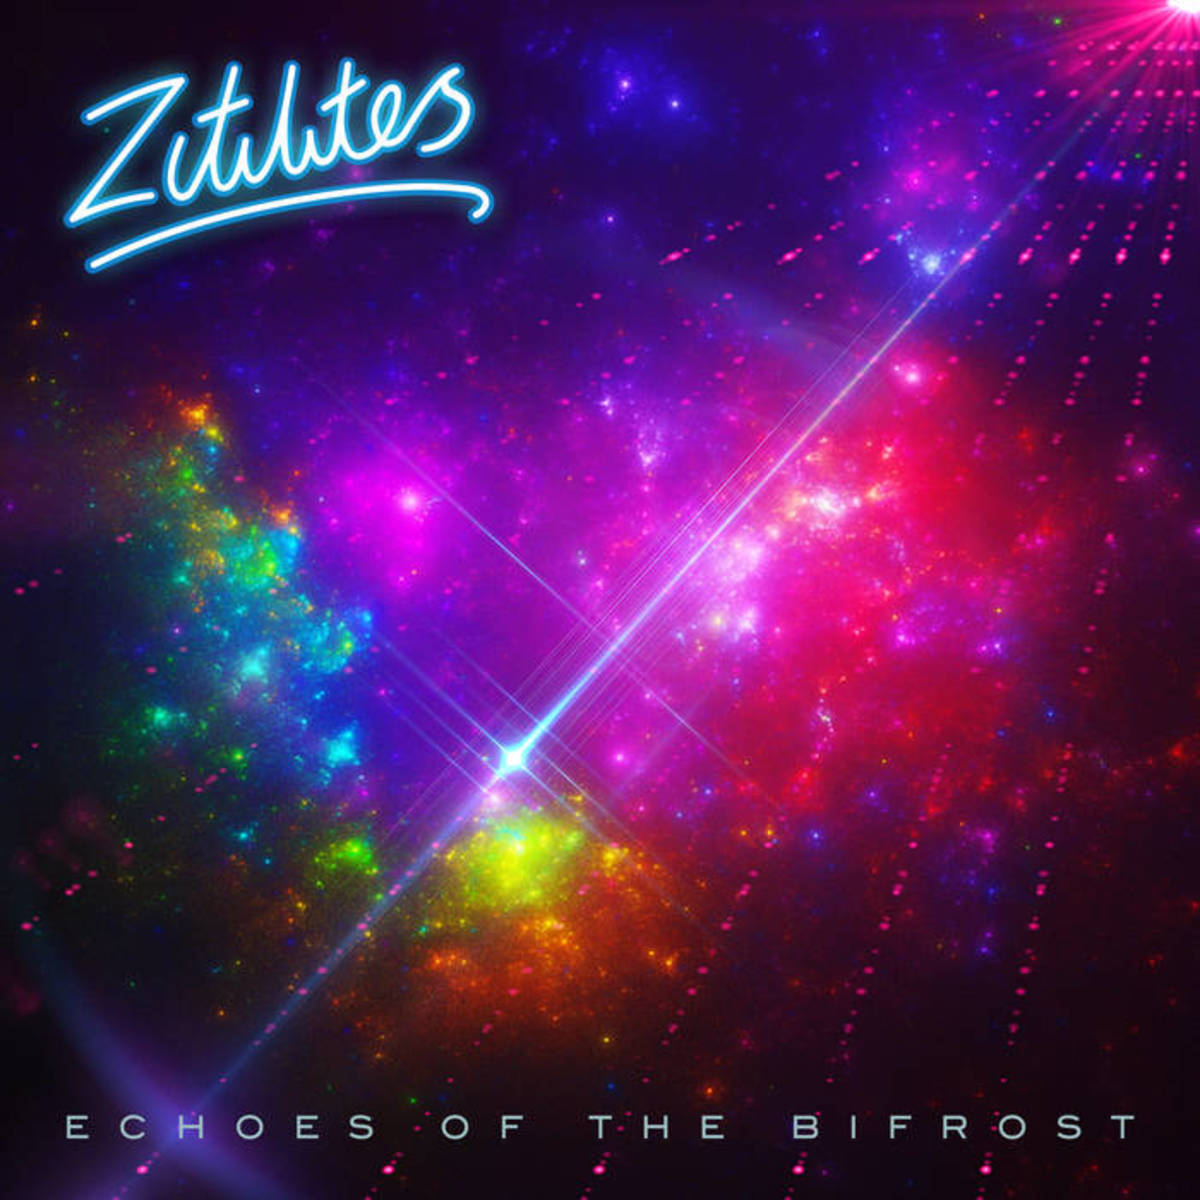 synth-single-review-echoes-of-the-bifrost-by-zitilites